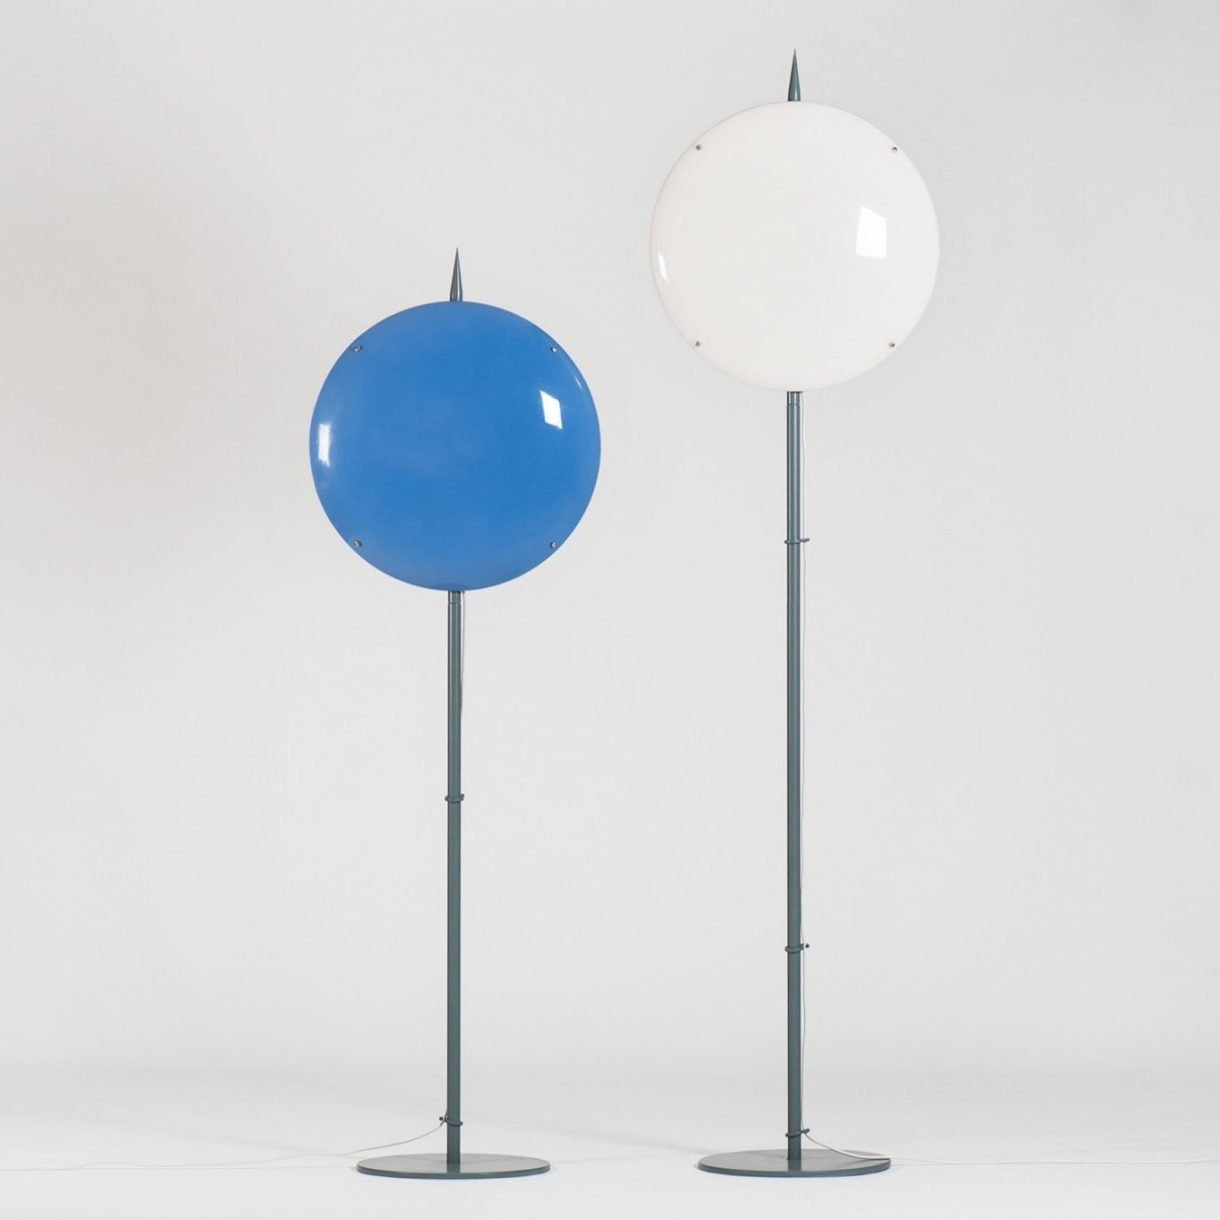 Blue and white Arredoluce Lamps designed by Italian architect and designer Gio Ponti for a house in Caracas